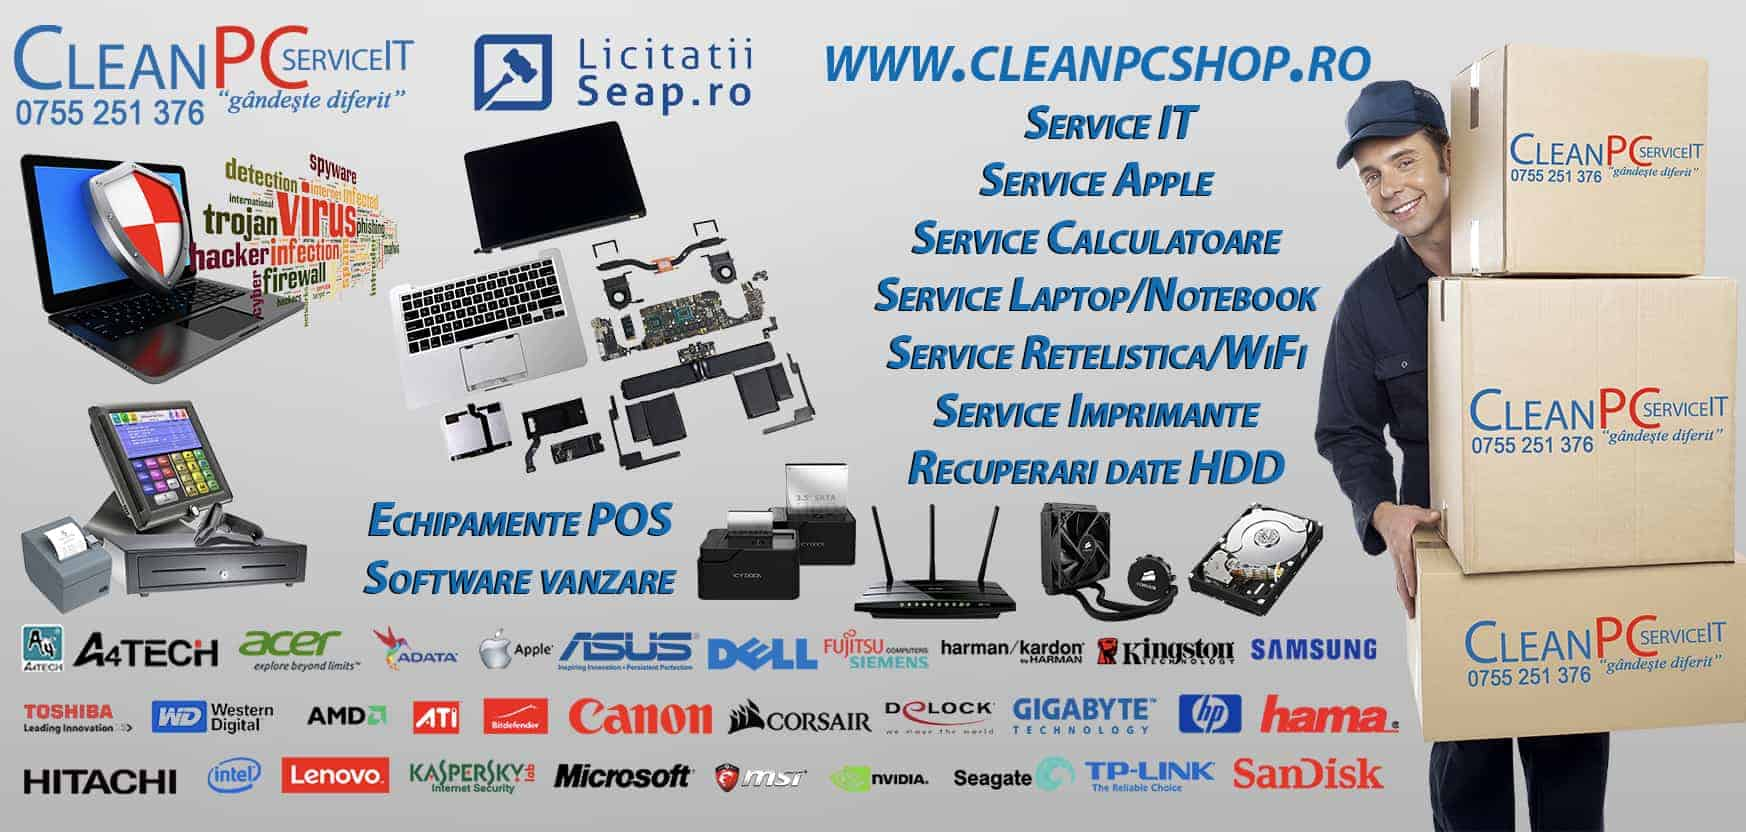 cleanpcshop - magazin calculatoare zalau